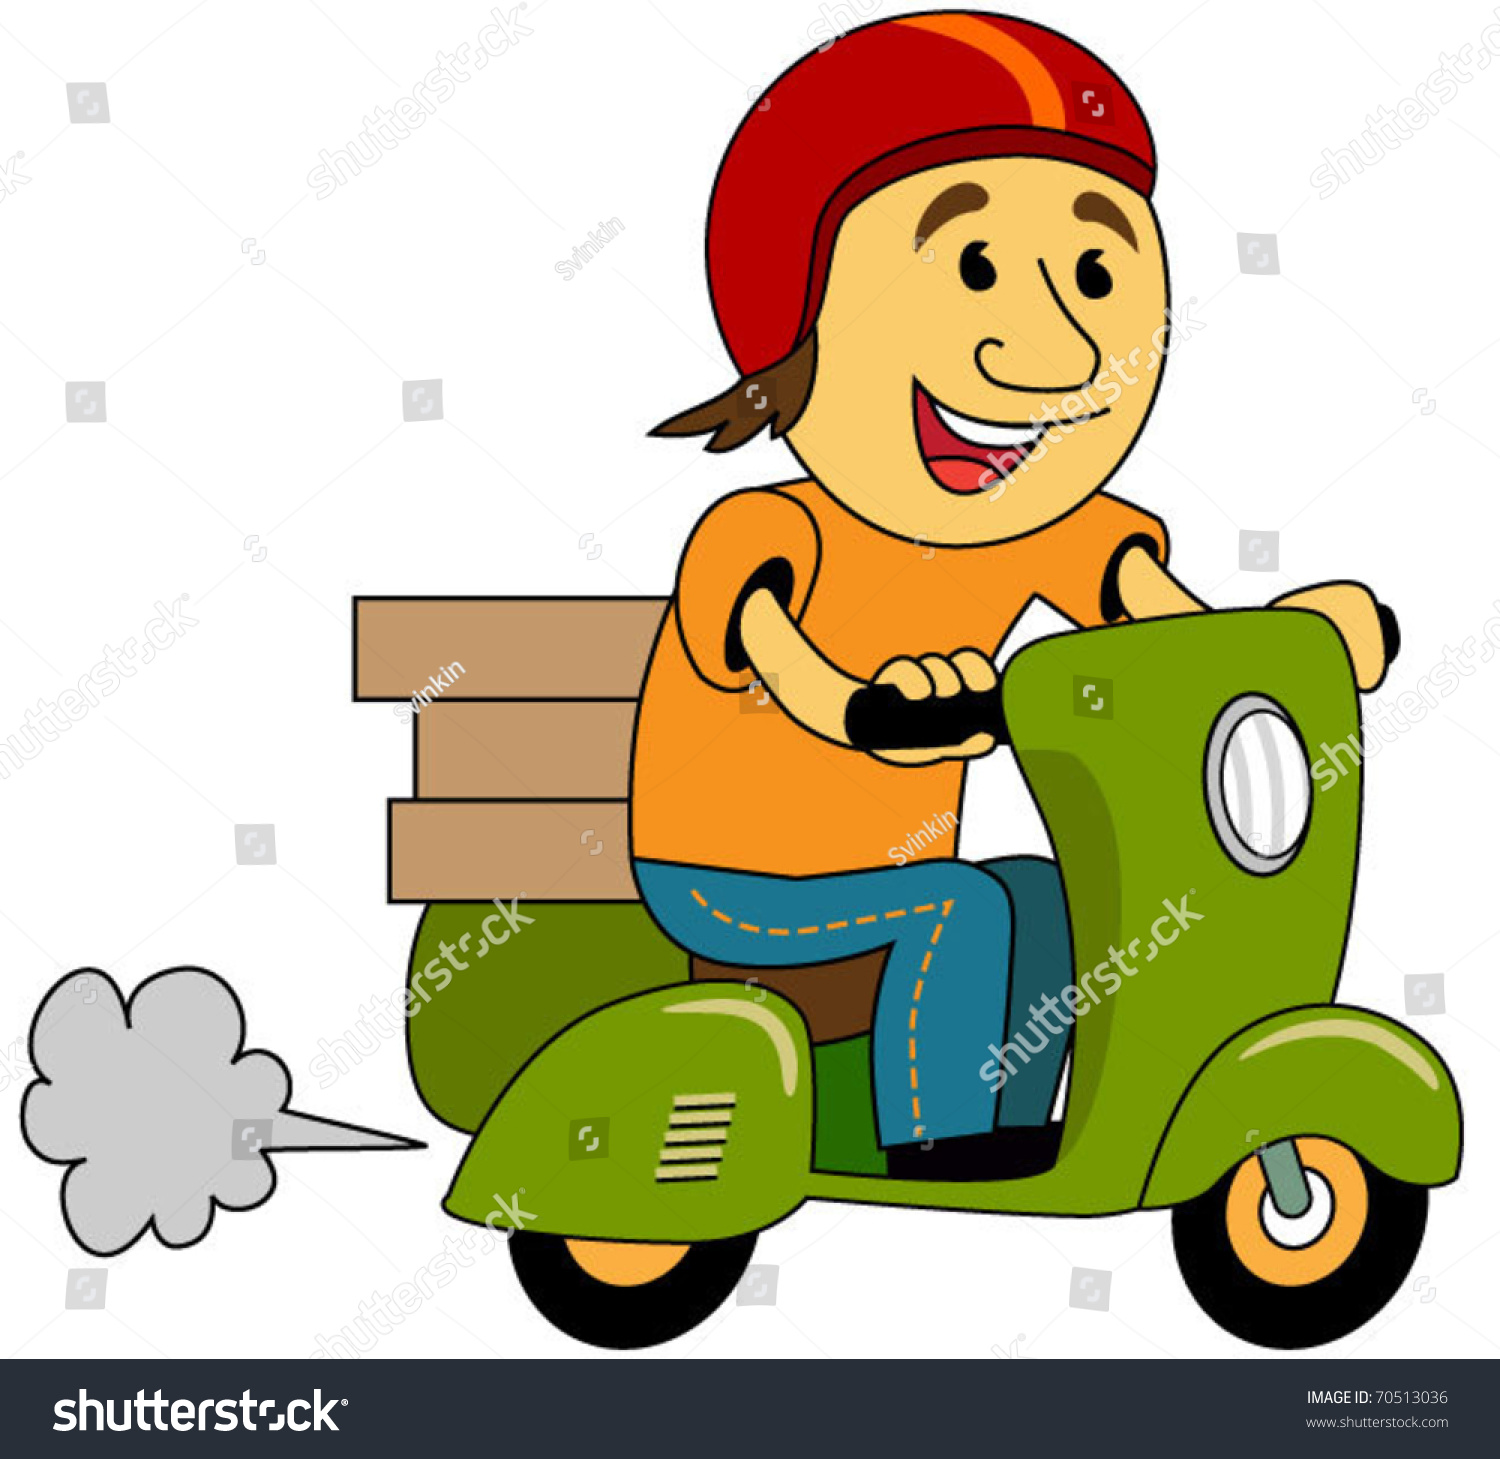 Delivery boy clipart 5 » Clipart Station.